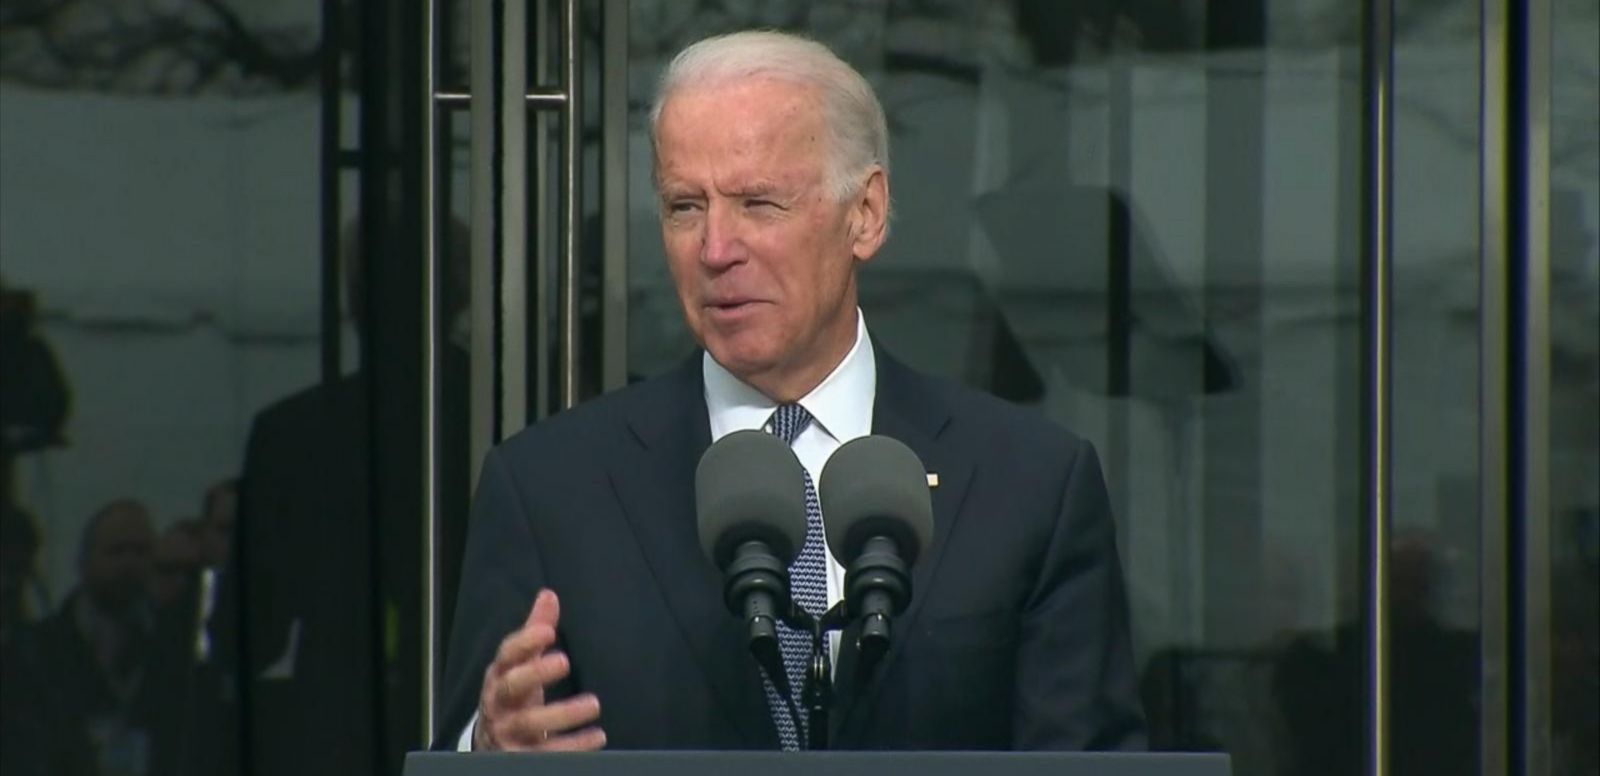 VIDEO: Joe Biden Remembers Ted Kennedy as 'Anchor' of the Senate